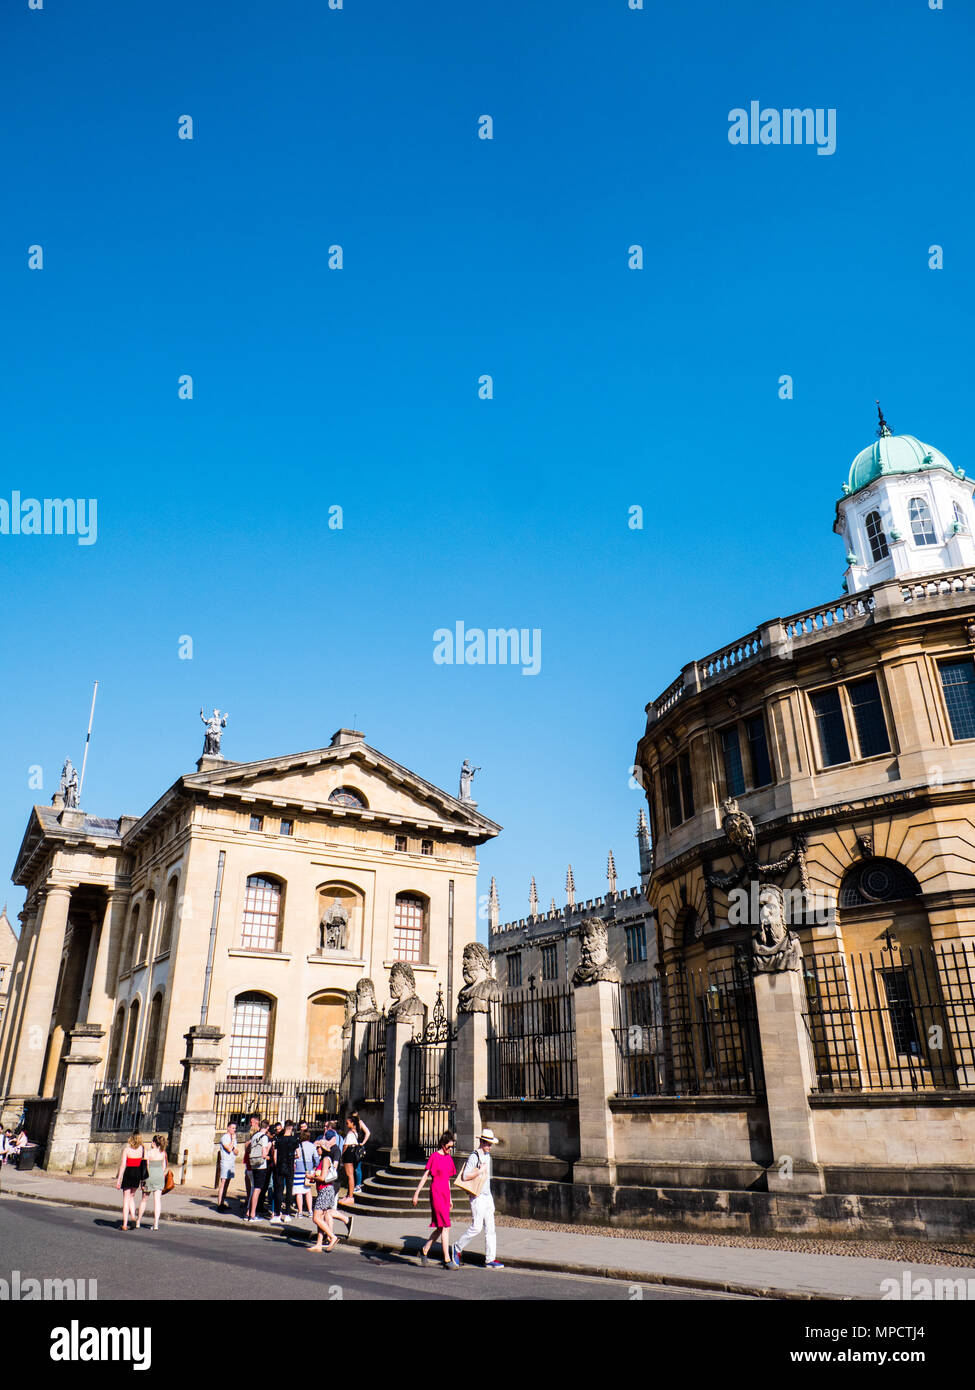 Tourists outside, Clarendon Building, and The Sheldonian Theatre, University of Oxford, Oxfordshire, UK, England, UK, GB. Stock Photo